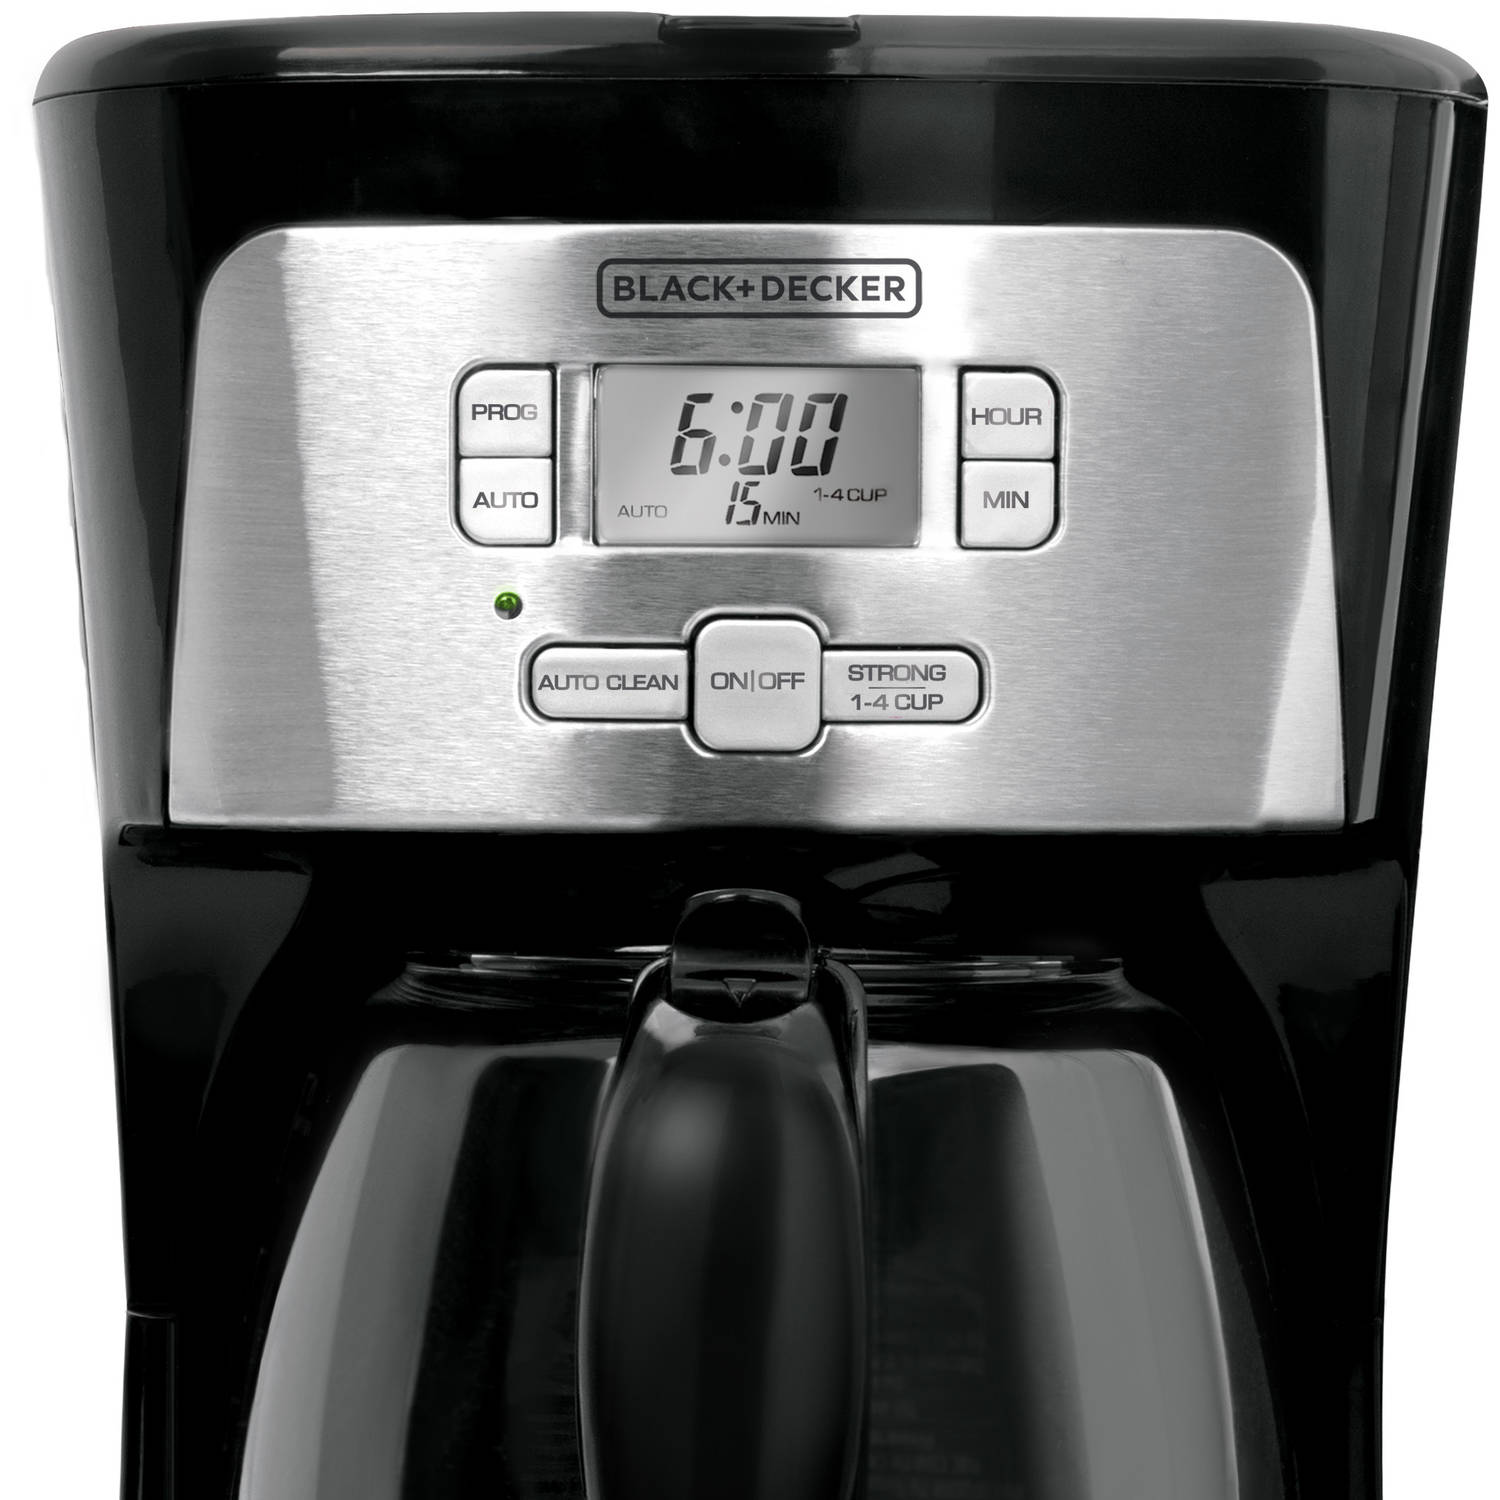 Black amp decker 12 cup coffee maker free shipping on orders over 45 - Black Amp Decker 12 Cup Coffee Maker Free Shipping On Orders Over 45 30